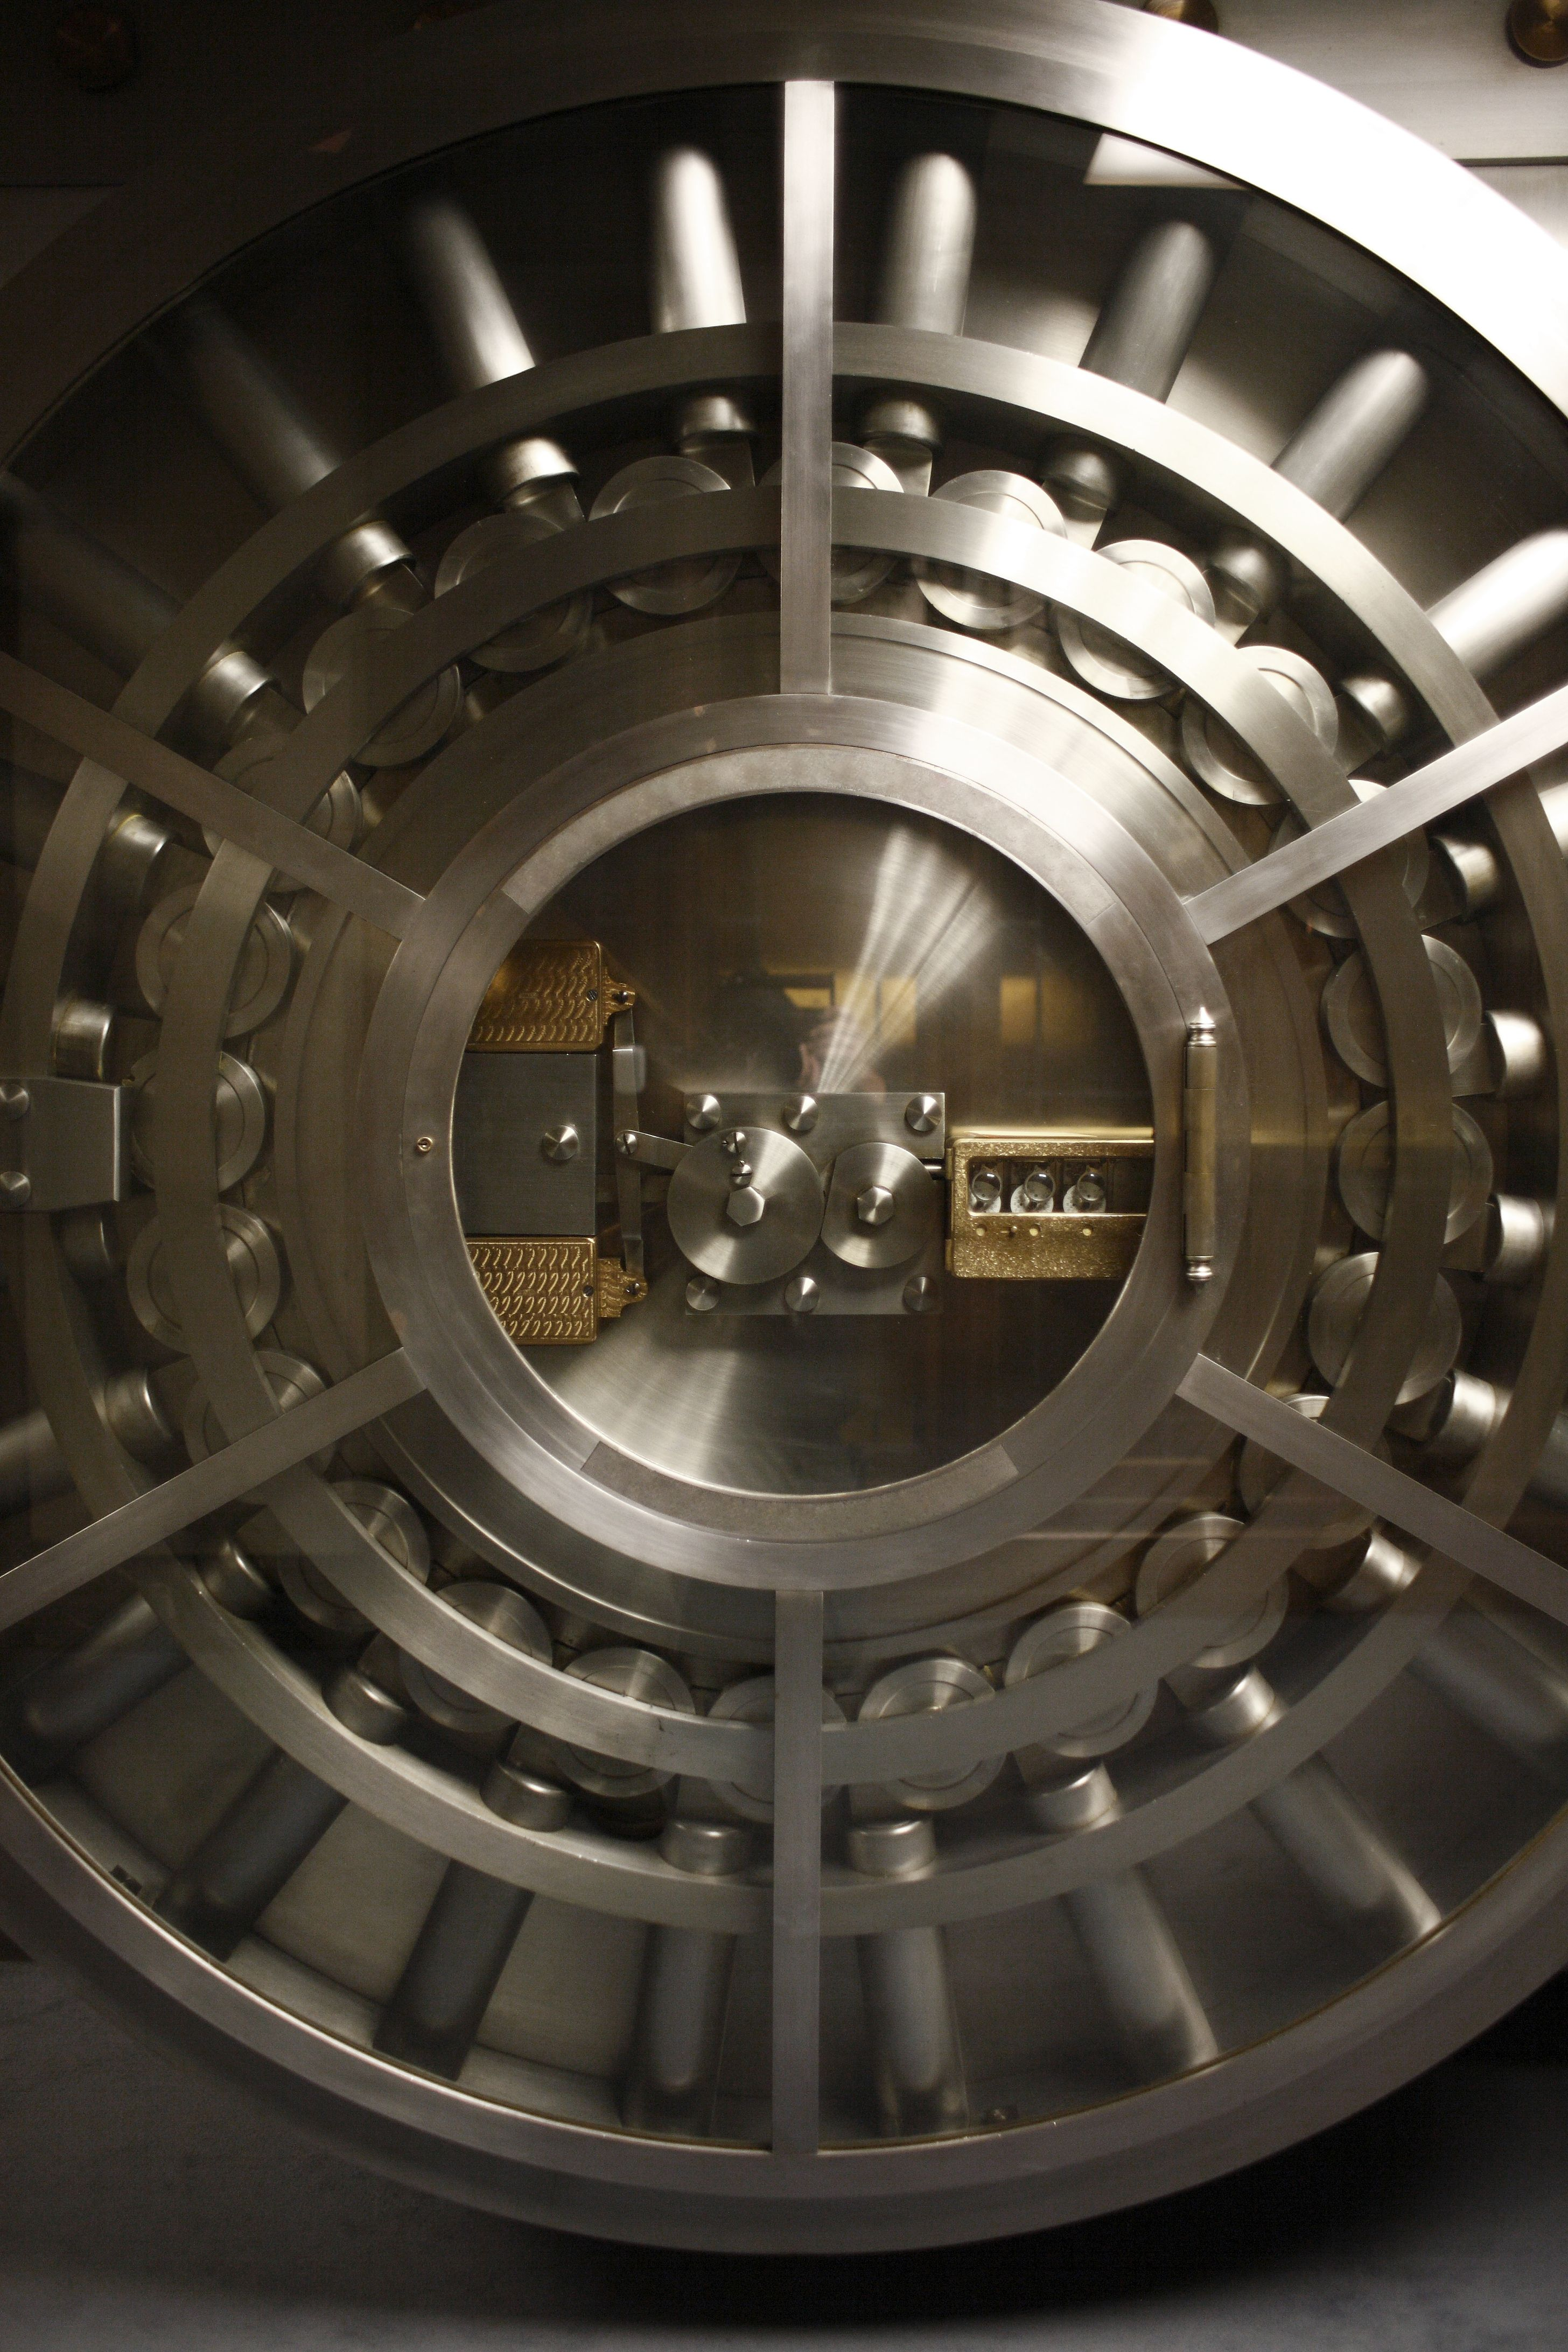 does banking's future outweigh its past